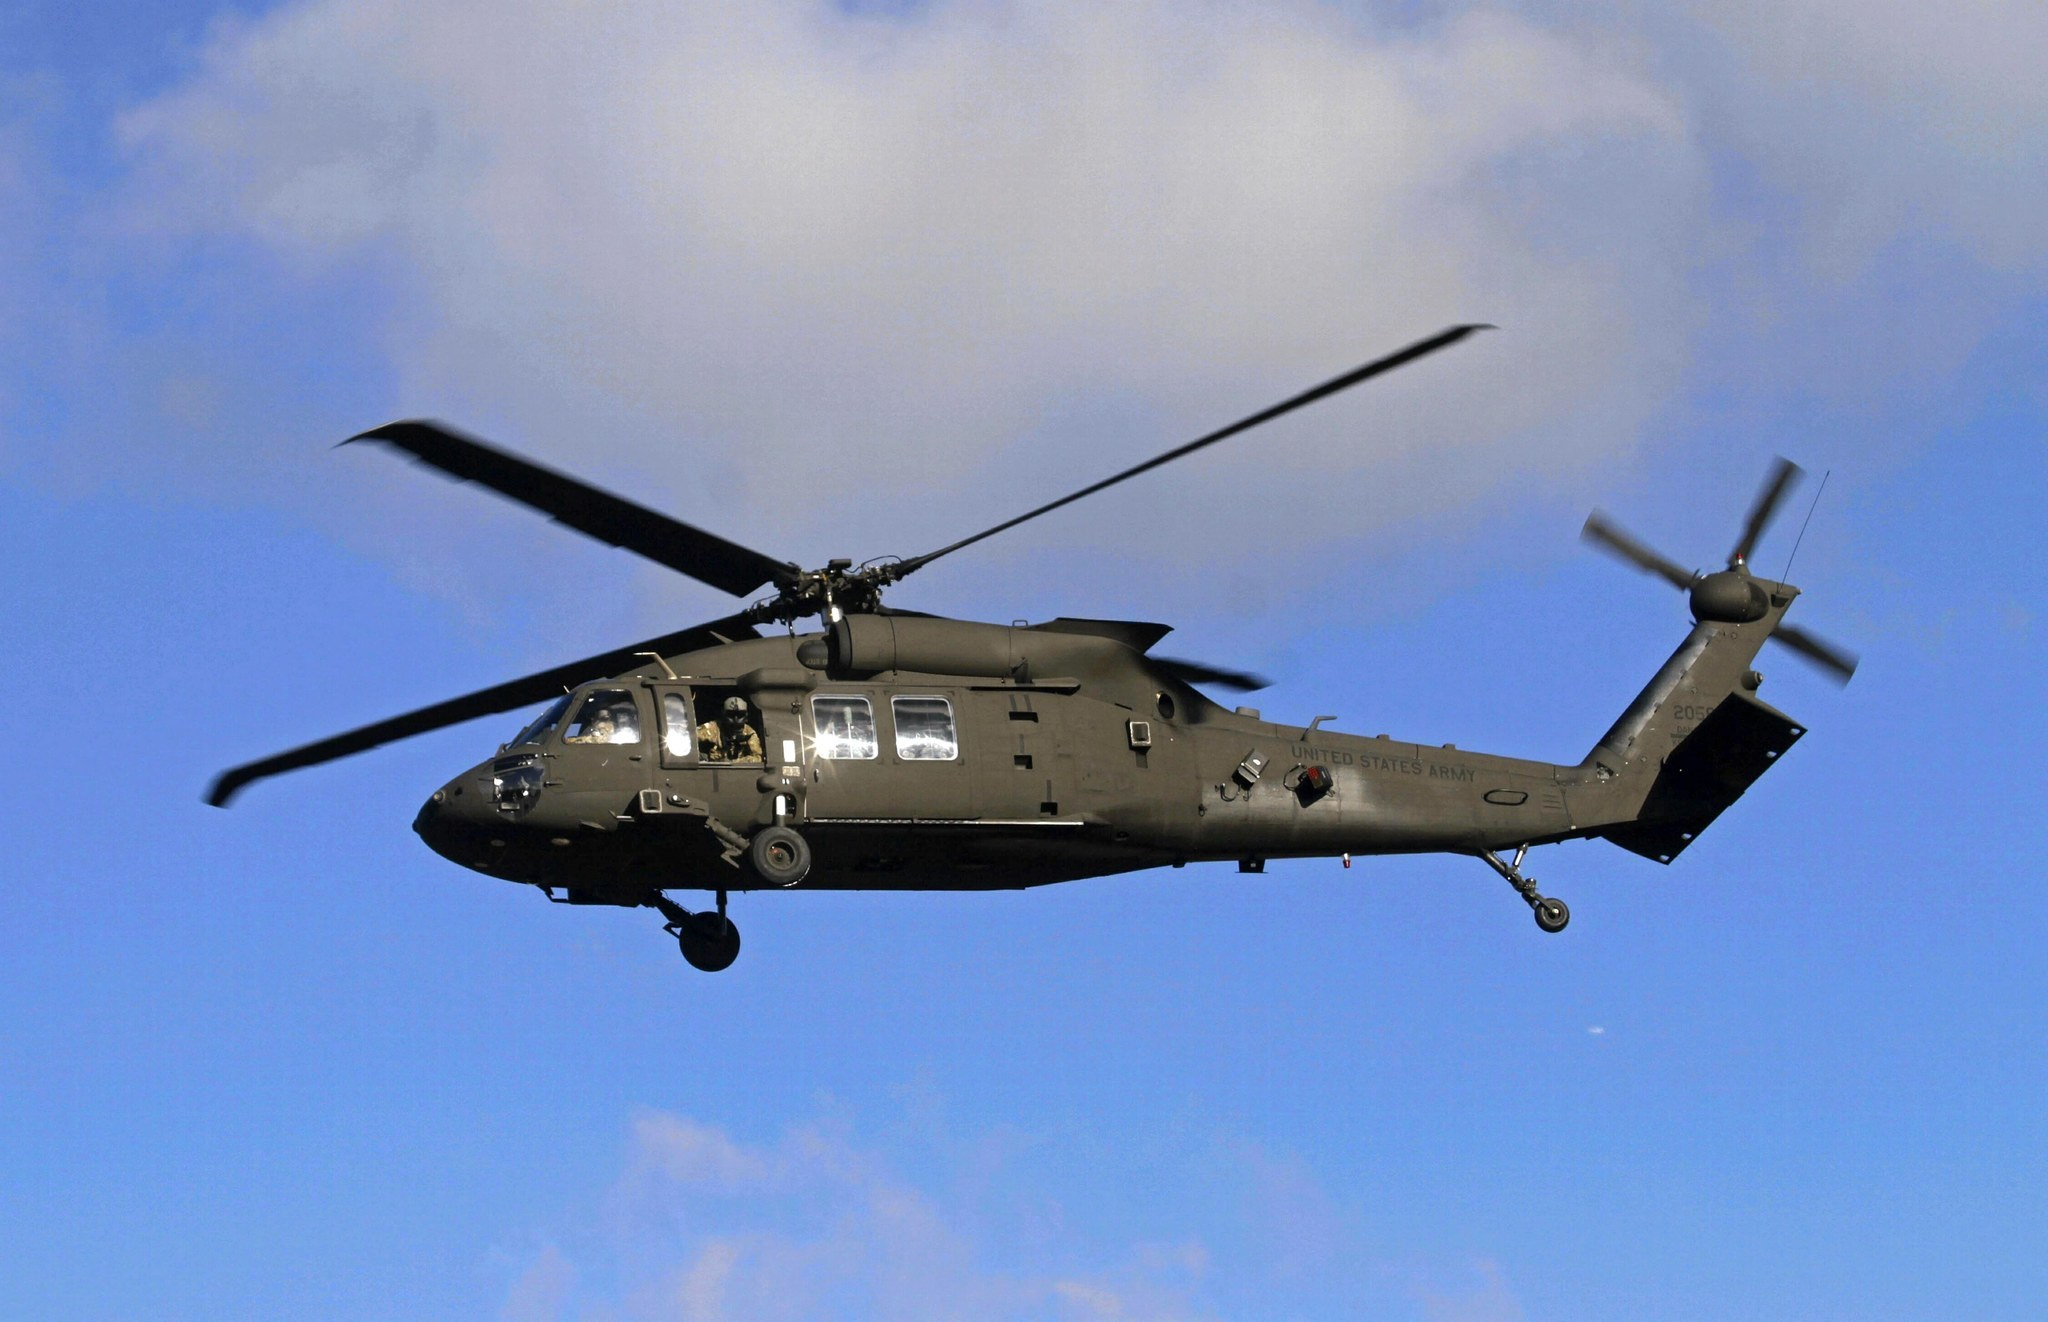 5 missing after Army helicopter goes down off Hawaii ...